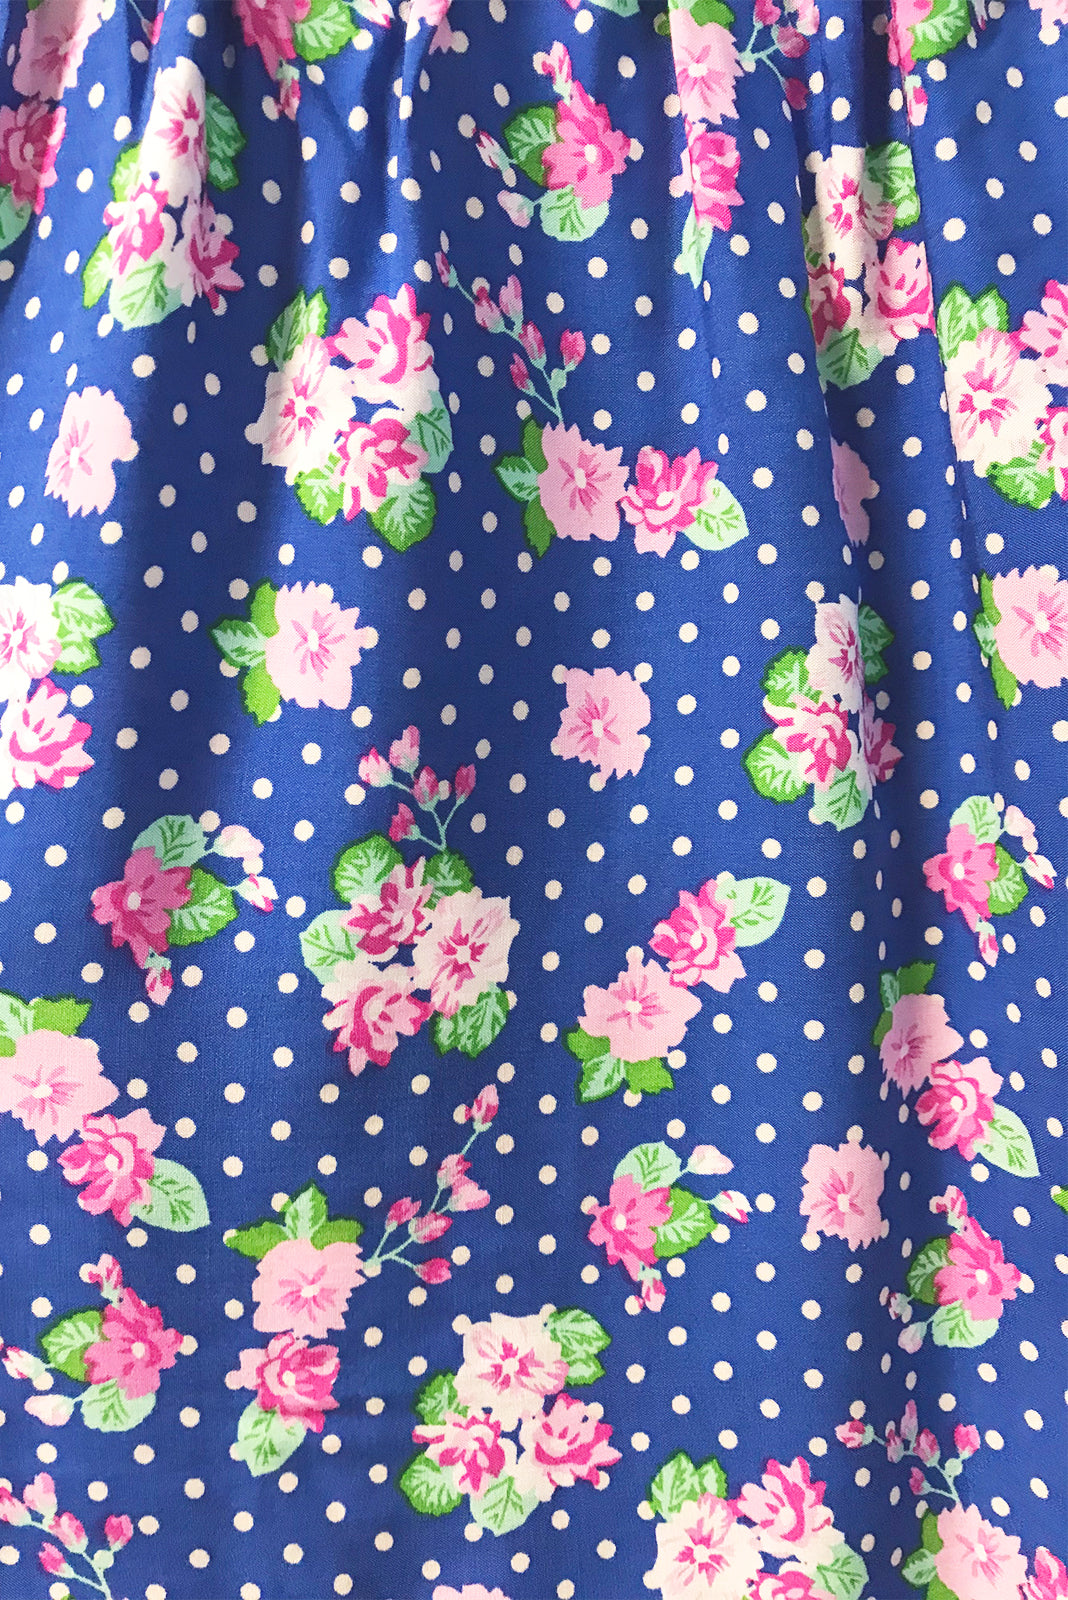 Fabric Swatch of Viva Cobalt Dress featuring 100% rayon in cobalt blue base with pink florals and white polka dots.